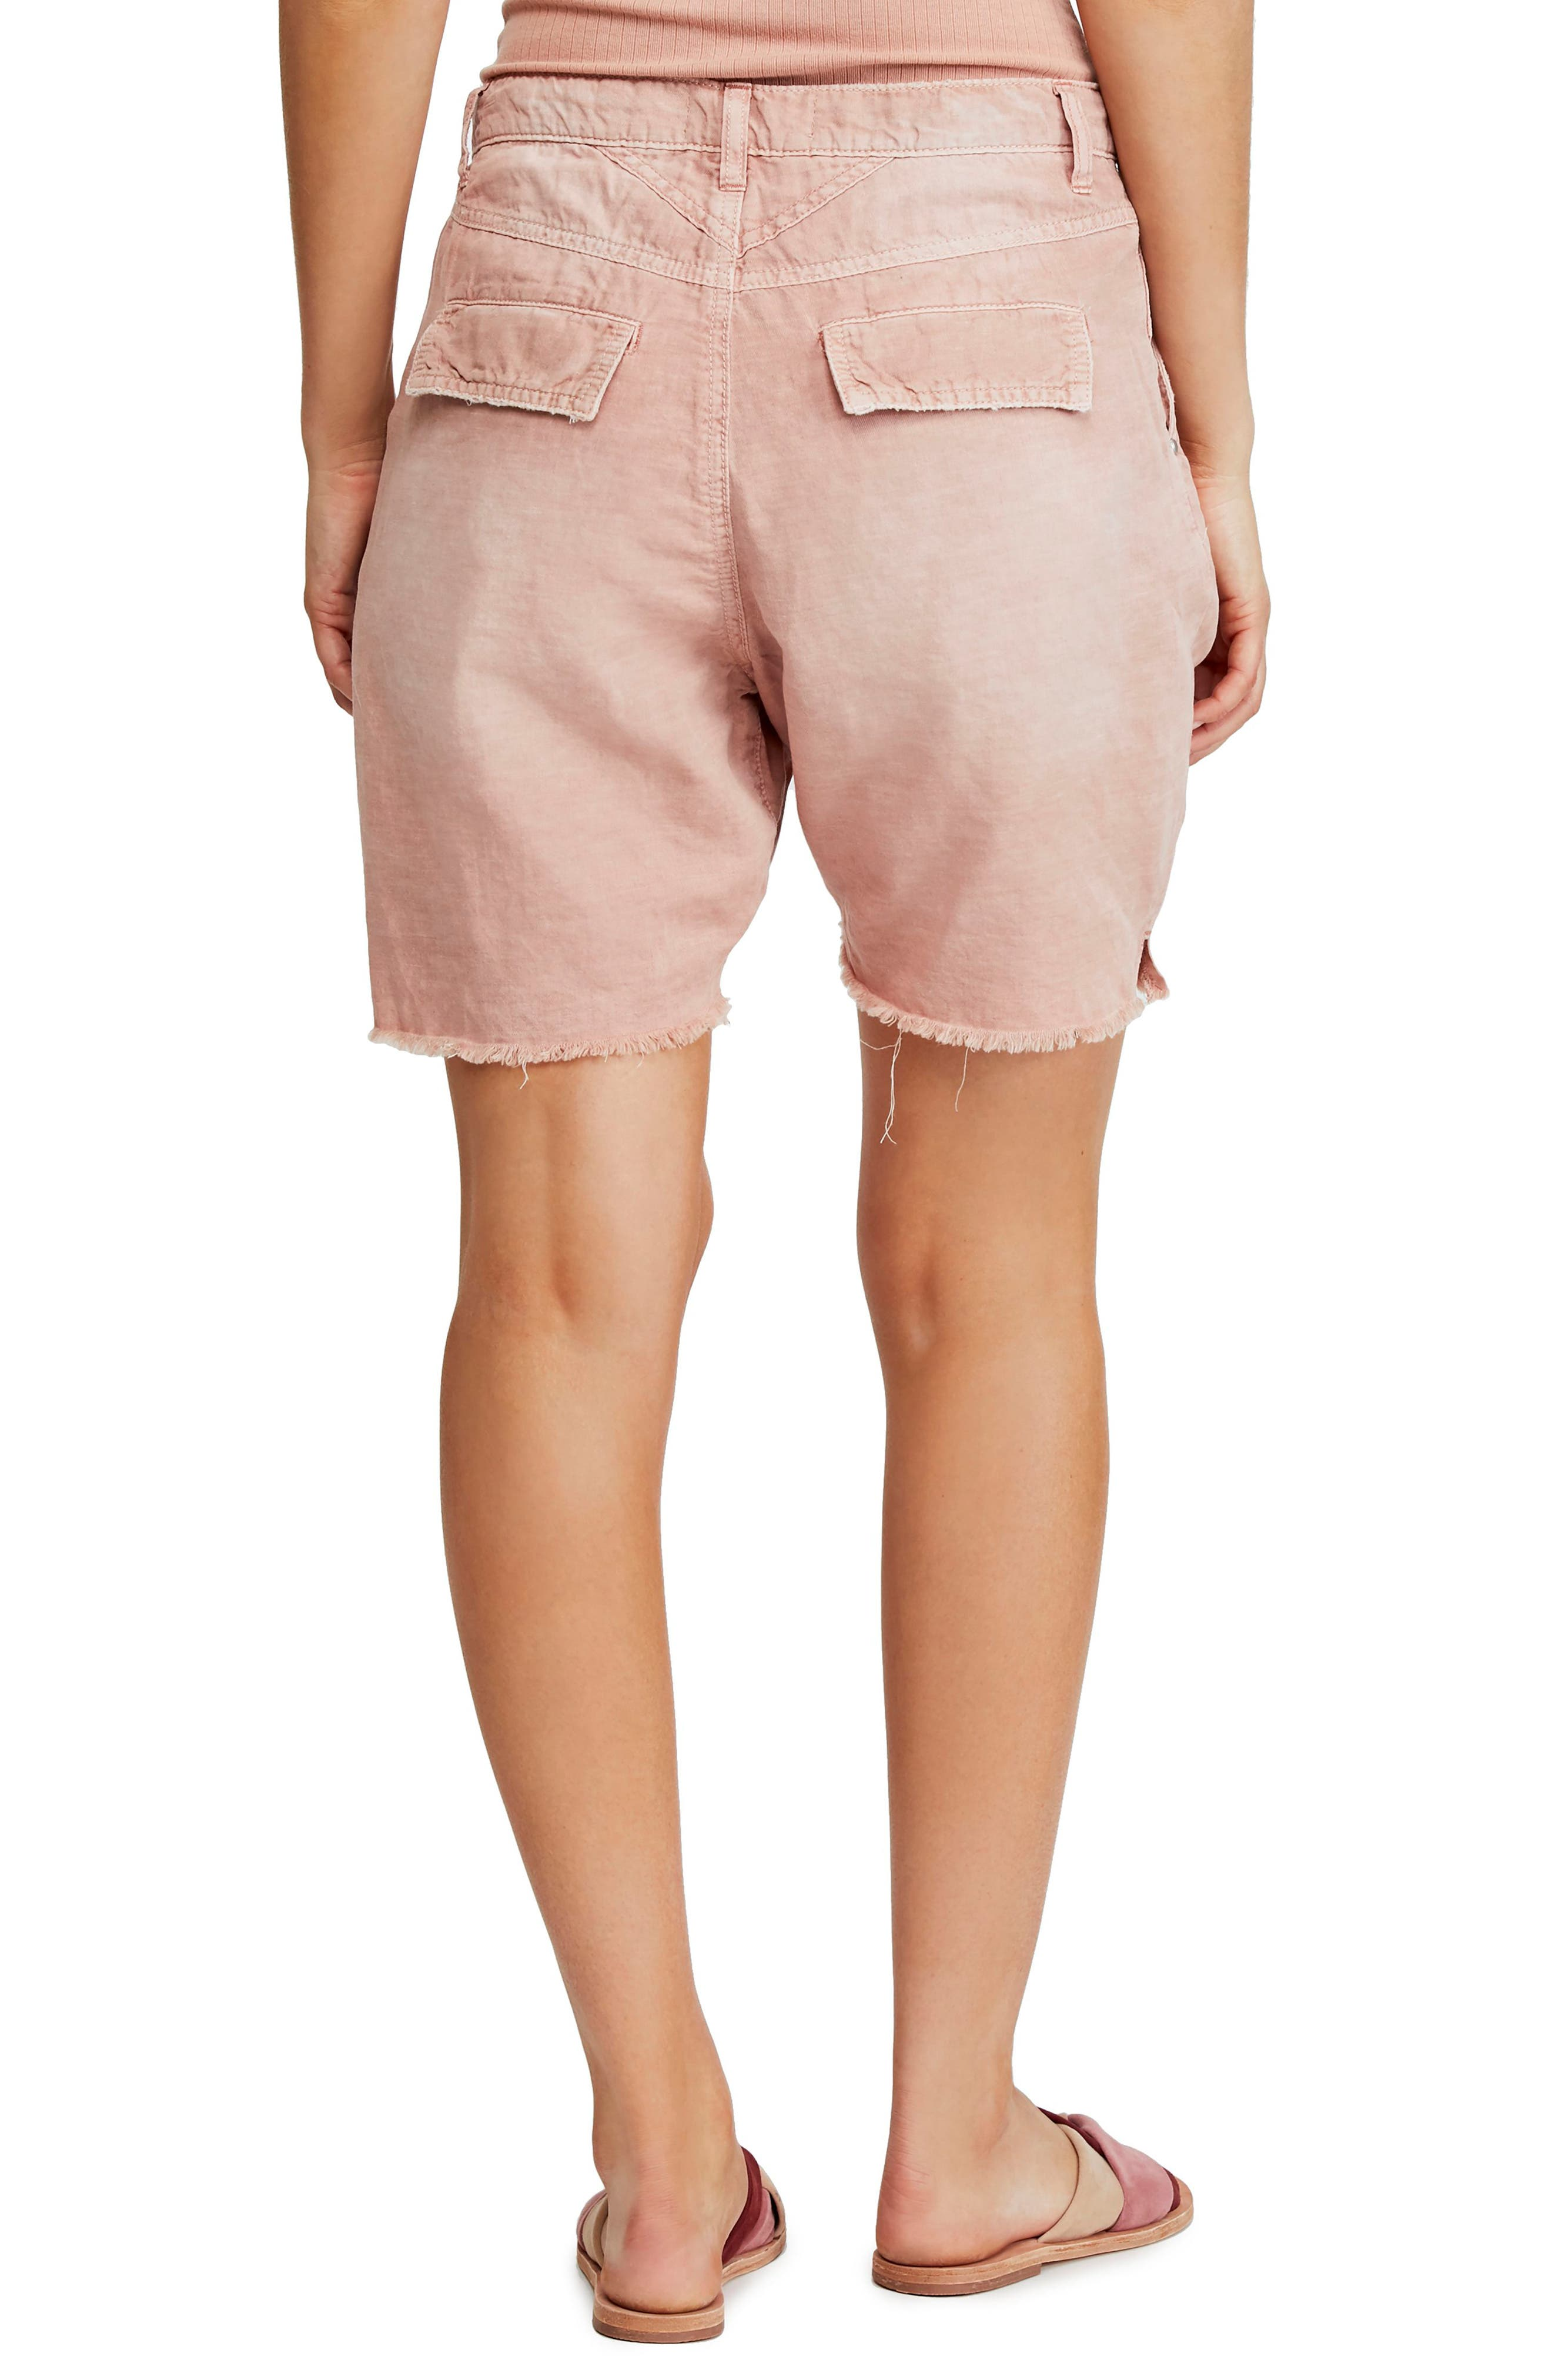 We The Free By Free PeopleUtility Harem ShortsPink12